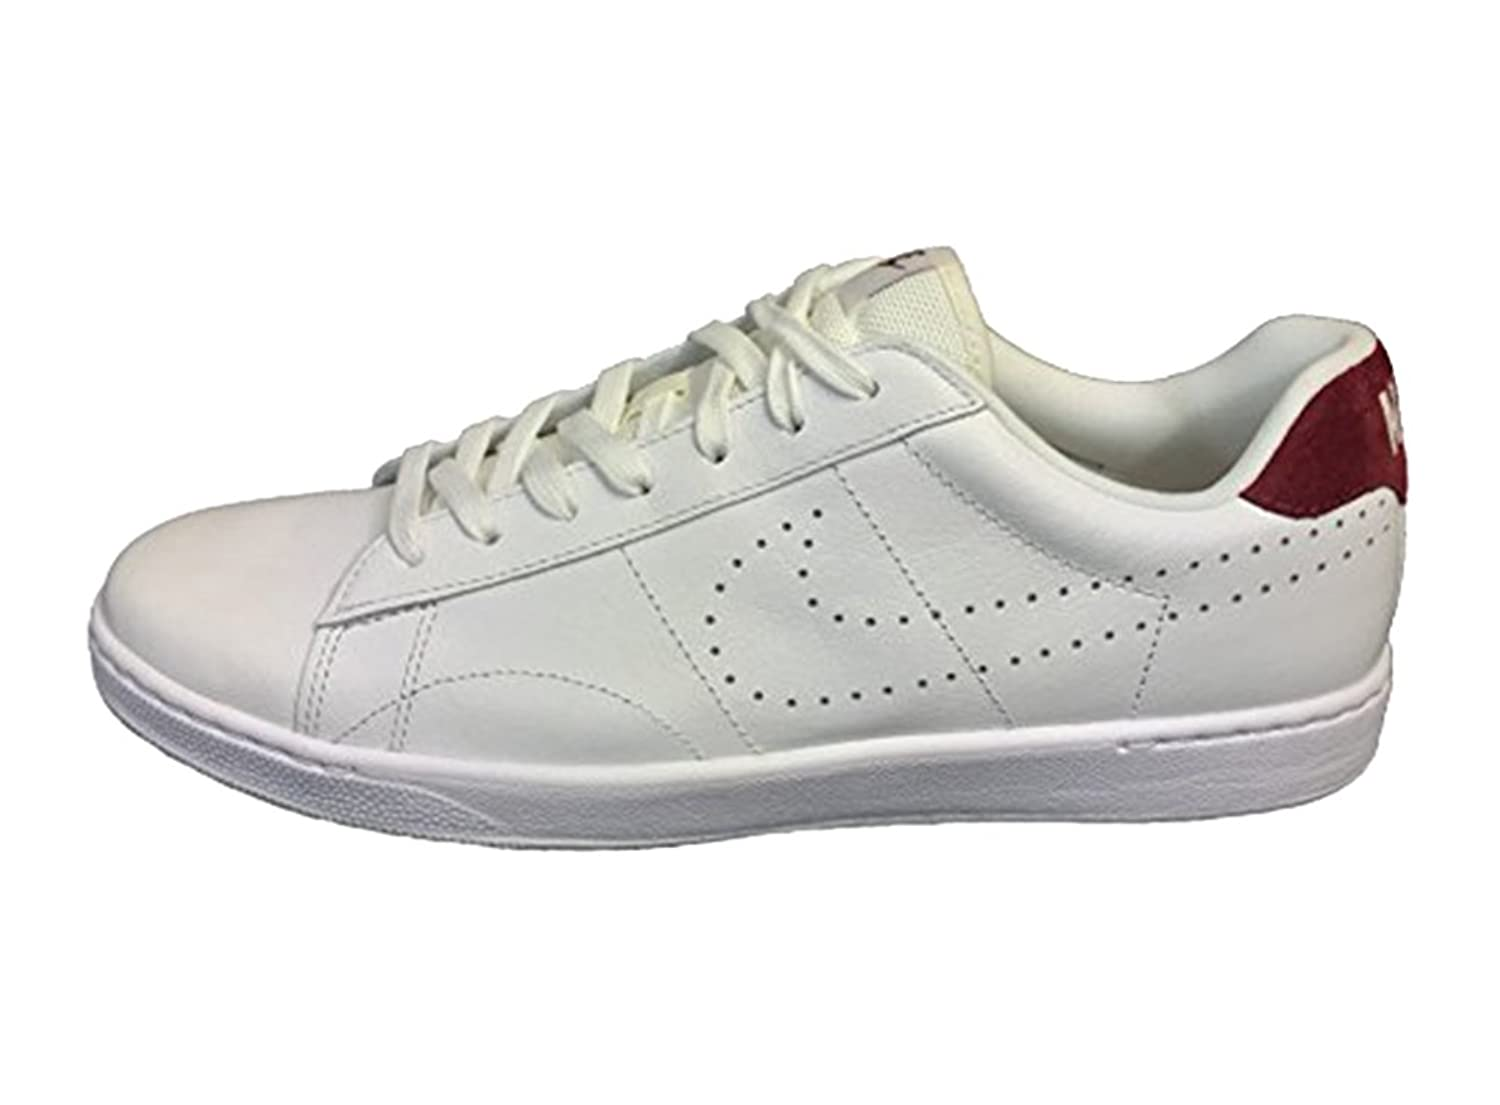 Nike Tennis Classic Ultra Lthr Mens Trainers (11.5) by Nike